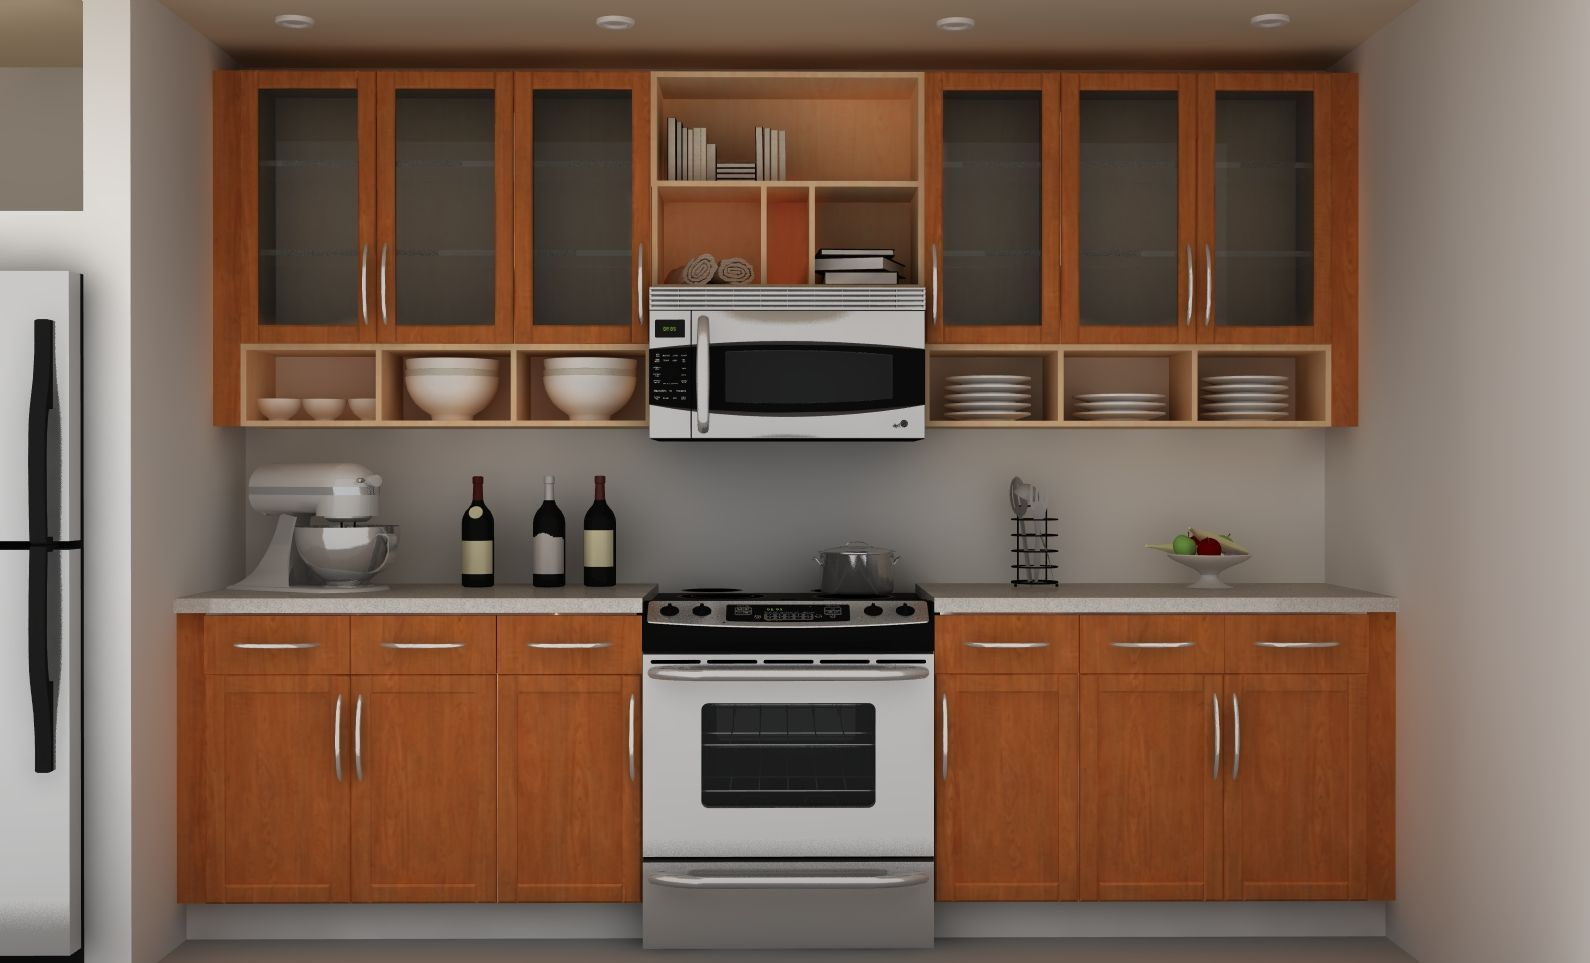 Exceptionnel Interesting Simple Kitchen Hanging Cabinet Designs Pictures Throughout Ideas